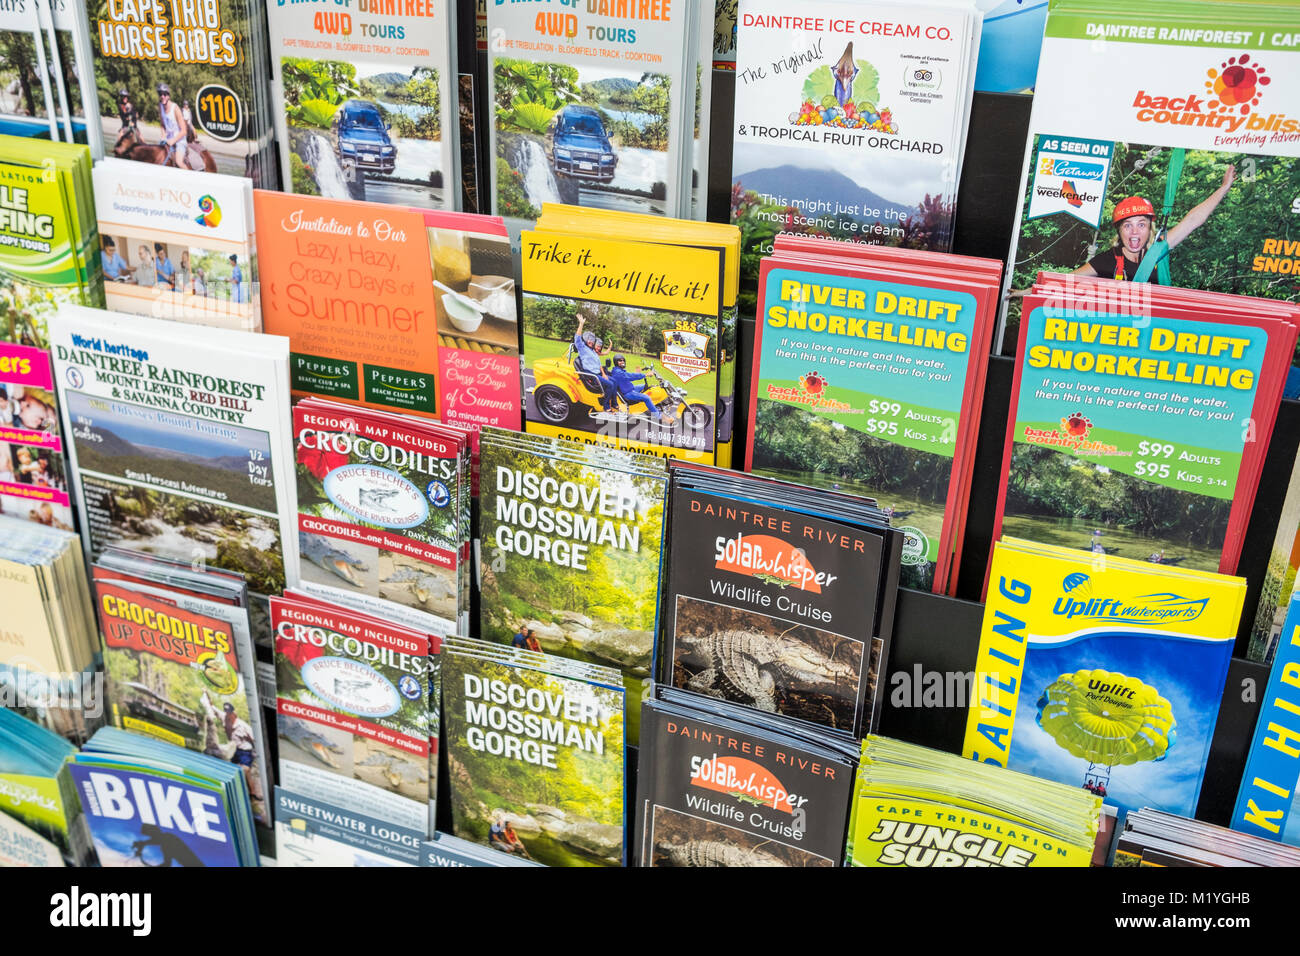 Tourism brochures and flyers promoting holiday activities around Port Douglas and Mossman gorge,Far north queensland,Australia - Stock Image